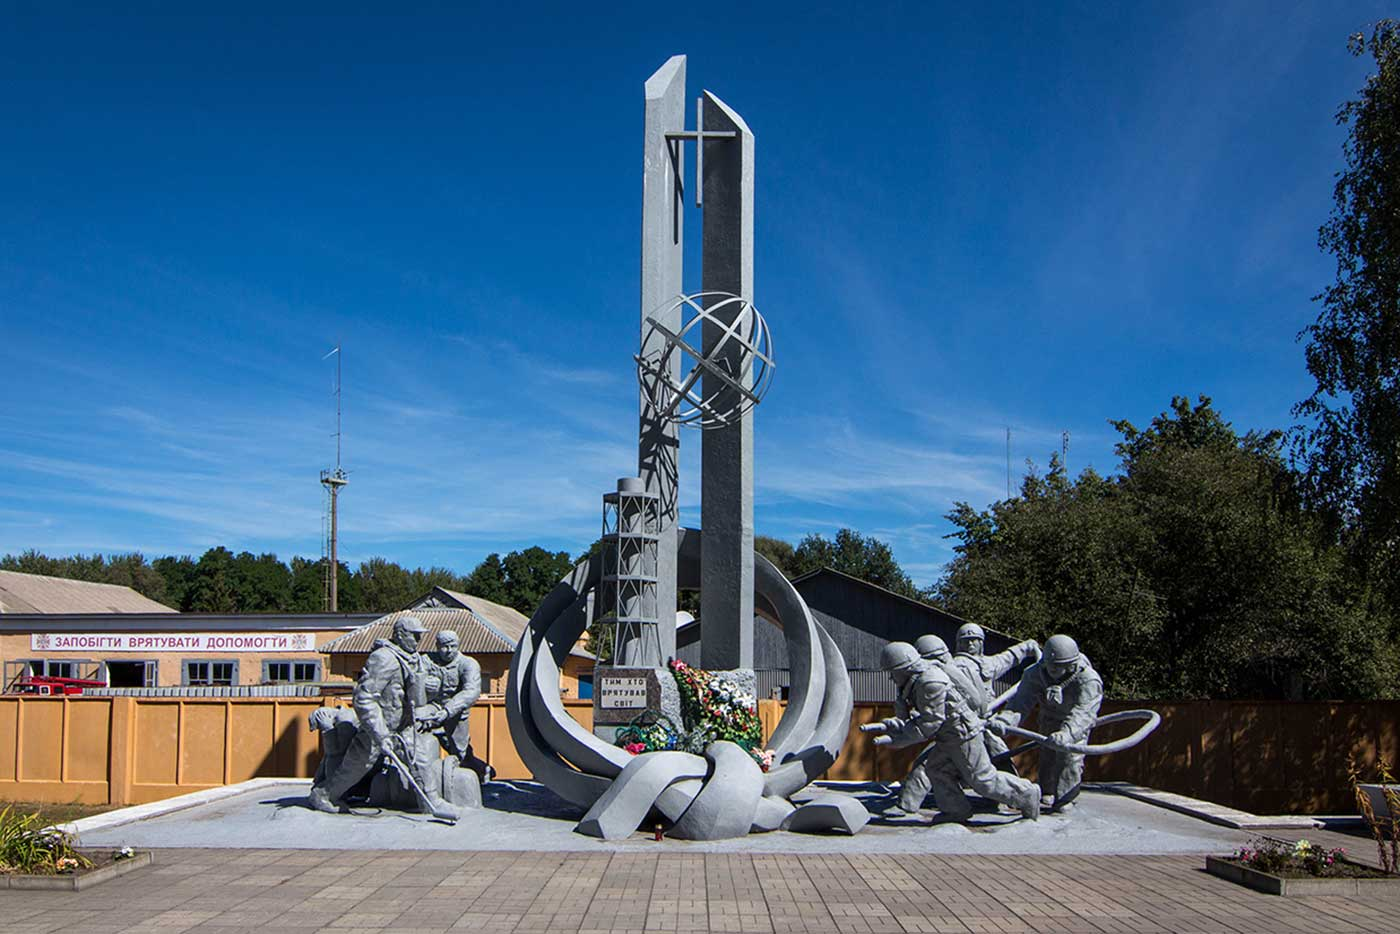 The Monument to Those Who Saved the World was installed in the Chernobyl Exclusion Zone on 26 April 1996 –the 10 year anniversary of the disaster.